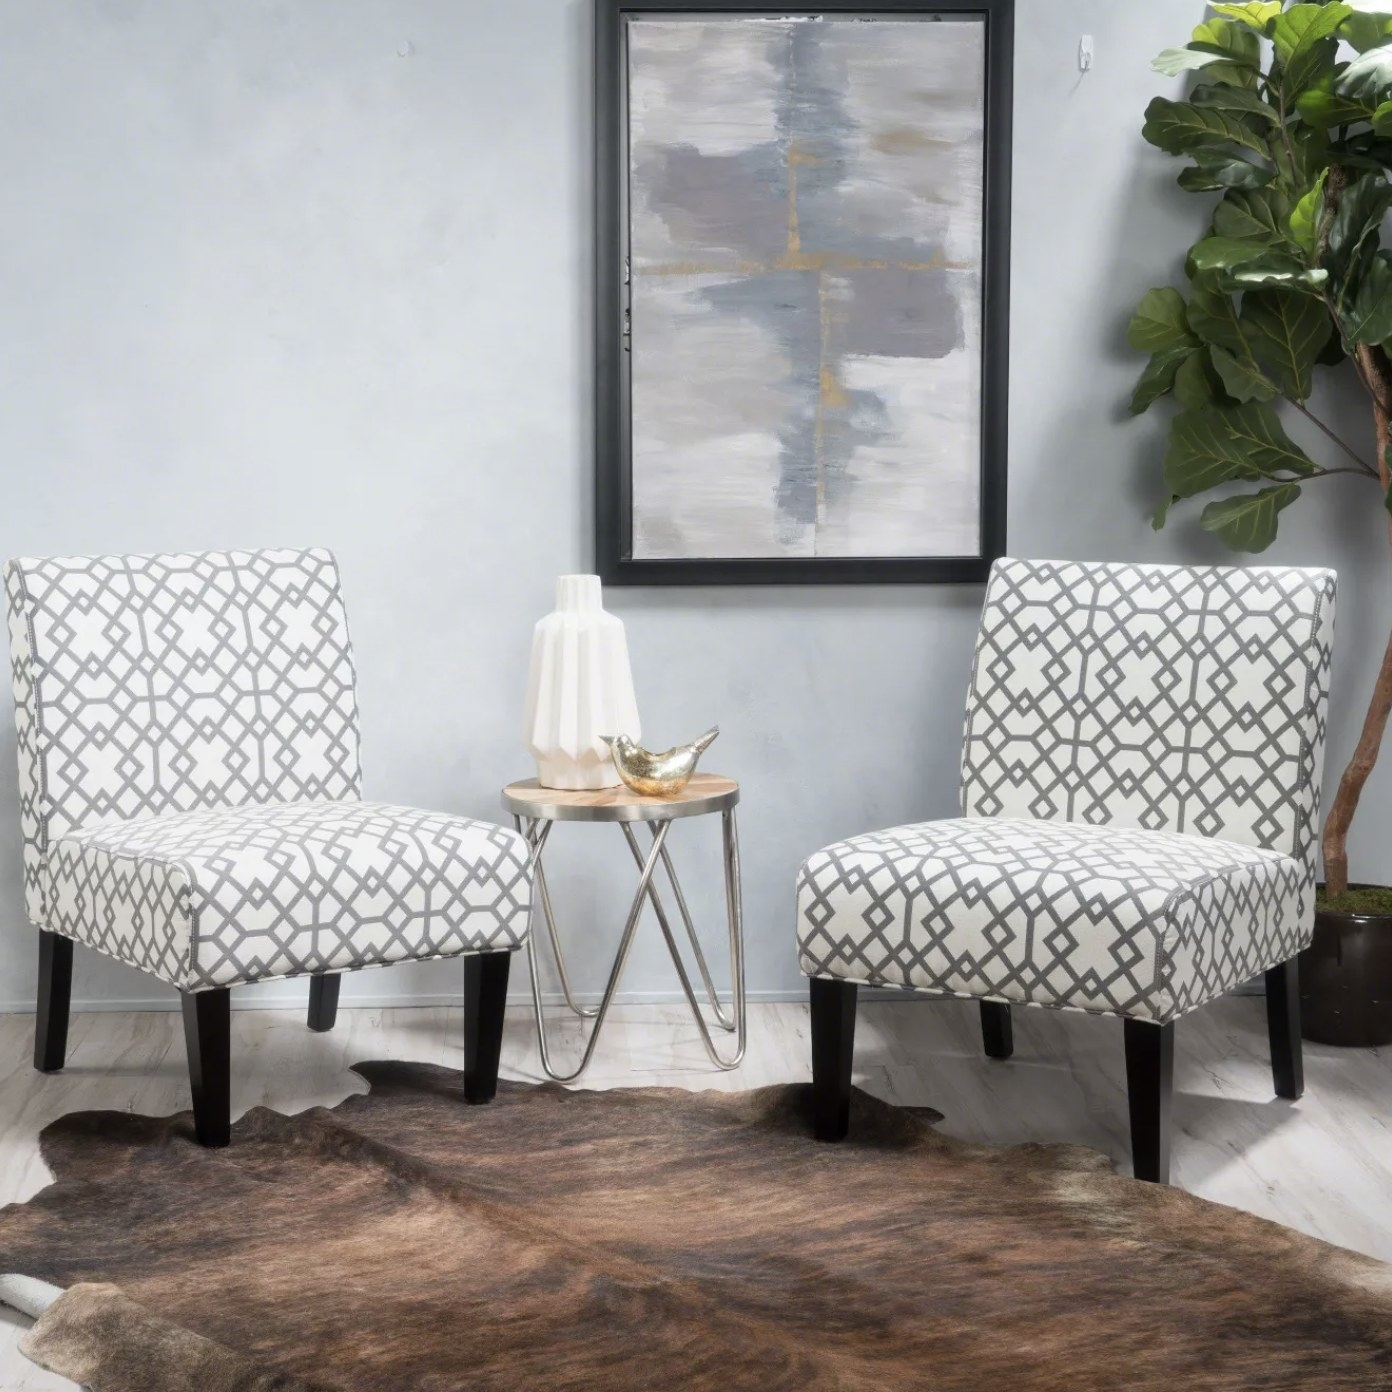 A set of two white accent chairs in a geometric pattern